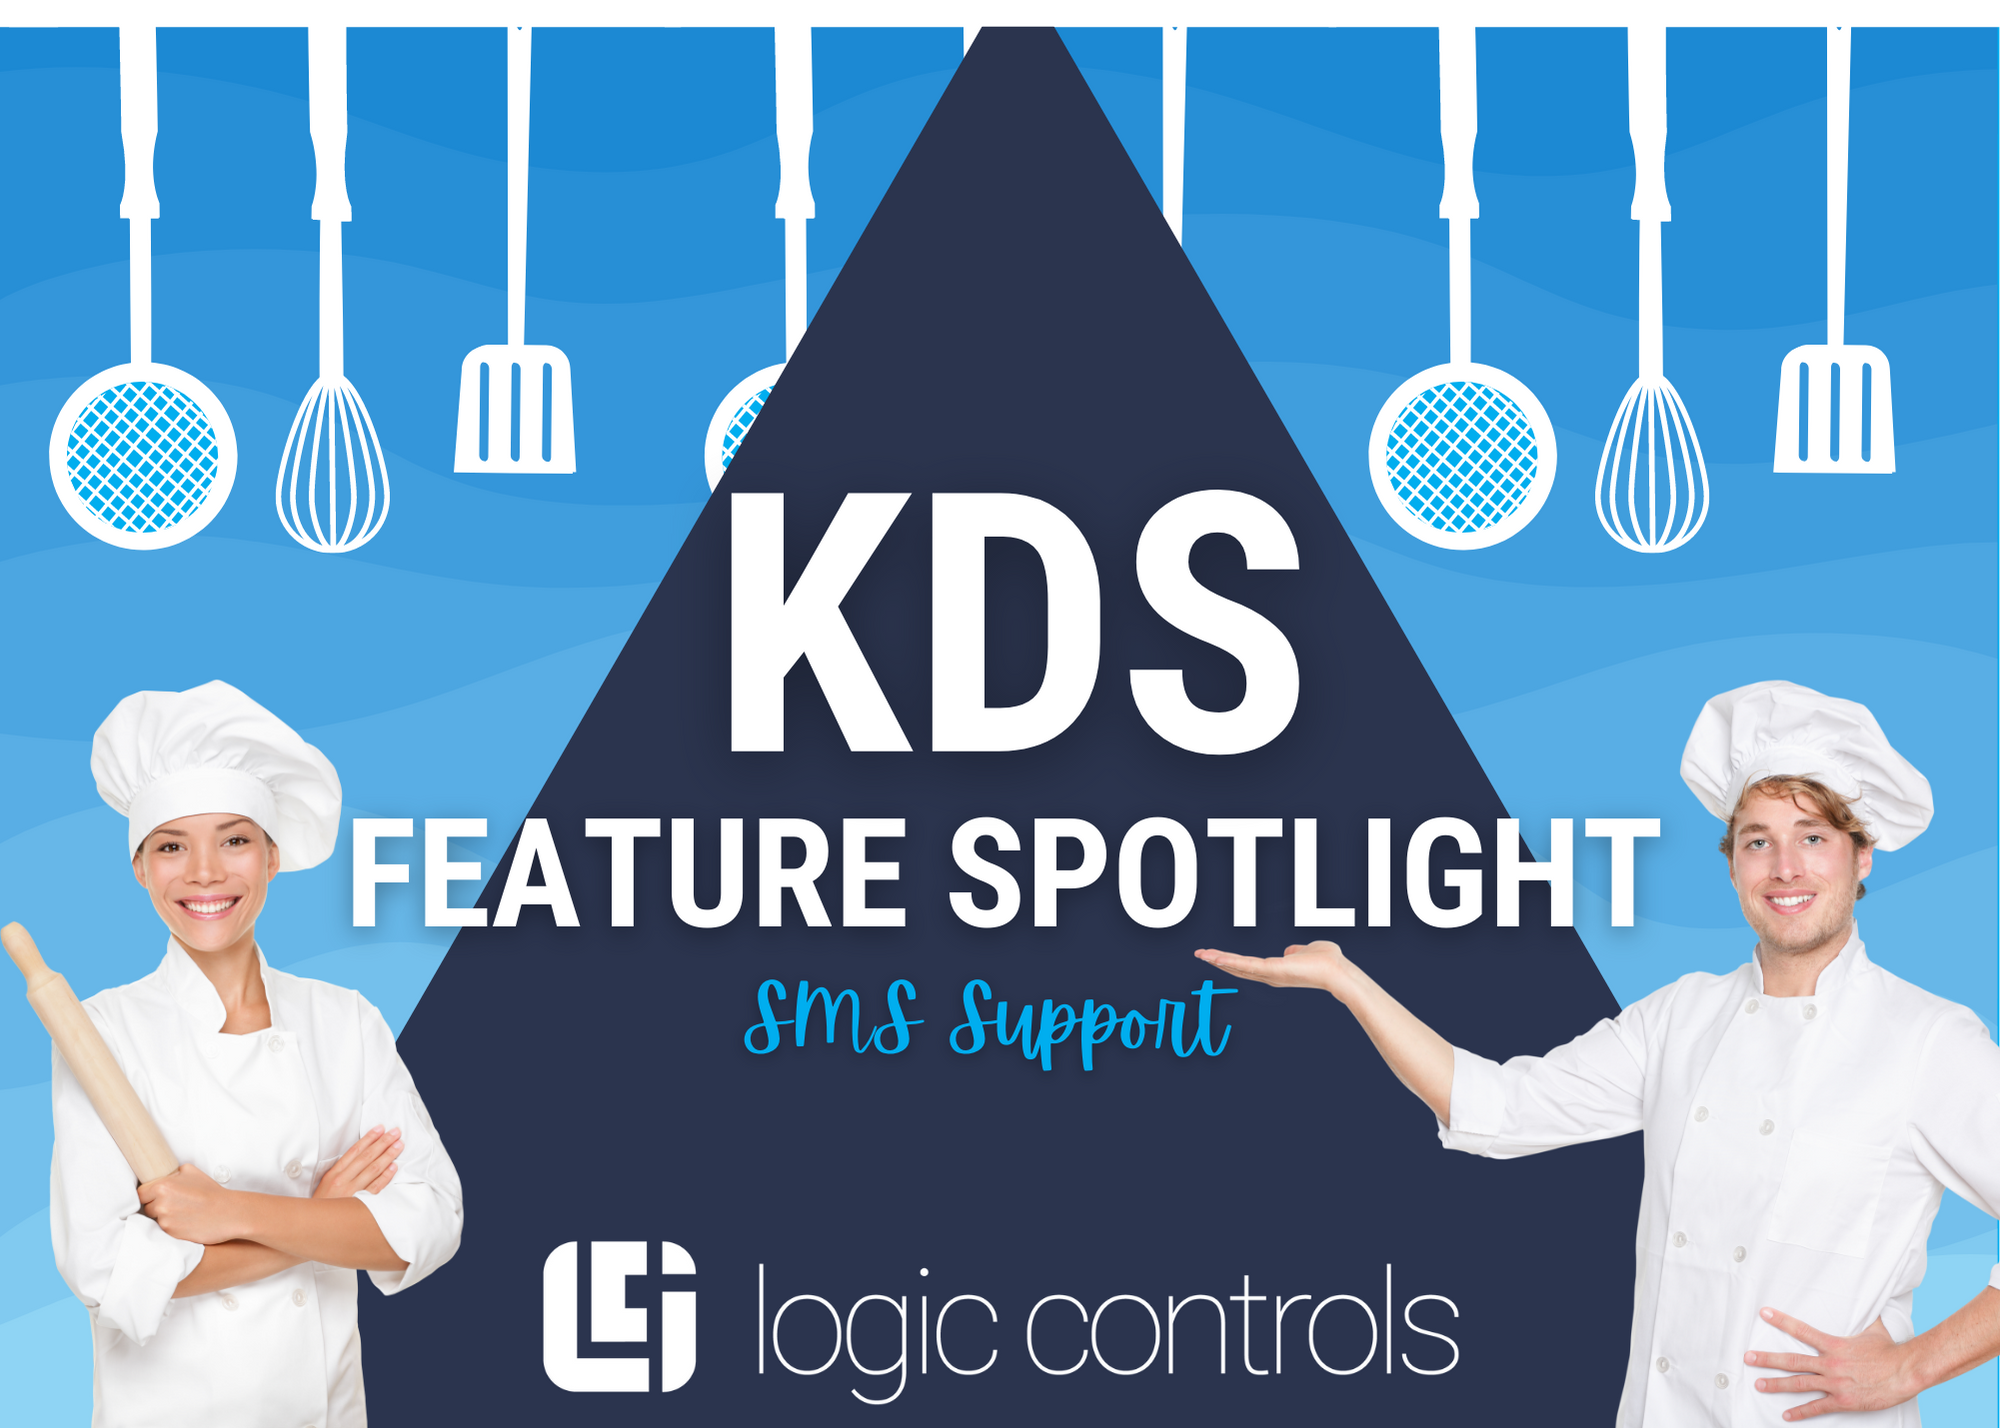 feature spotlight for kitchengo kds sms support